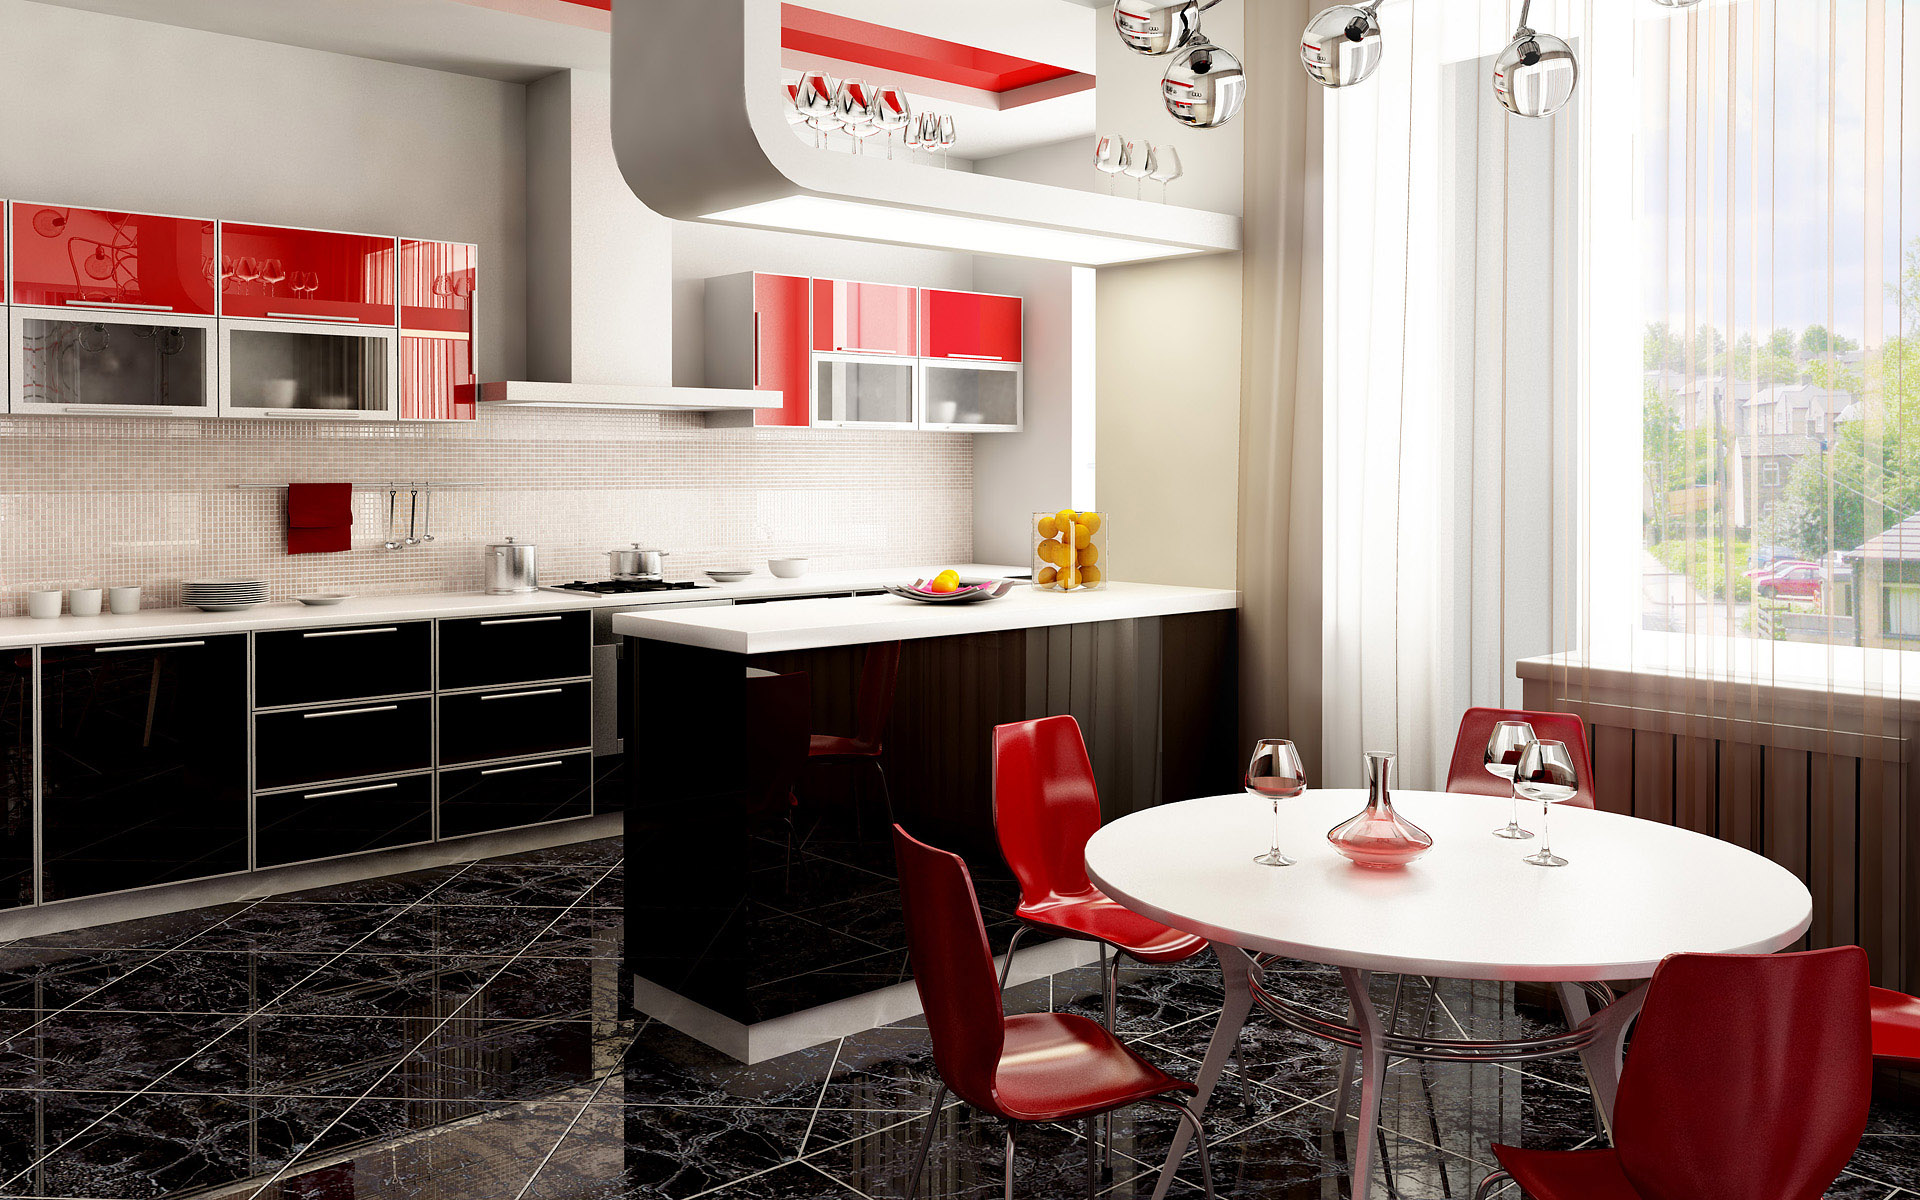 glossy-red-and-dark-brown-cabinets-kitchen glossy red and dark brown cabinets kitchen